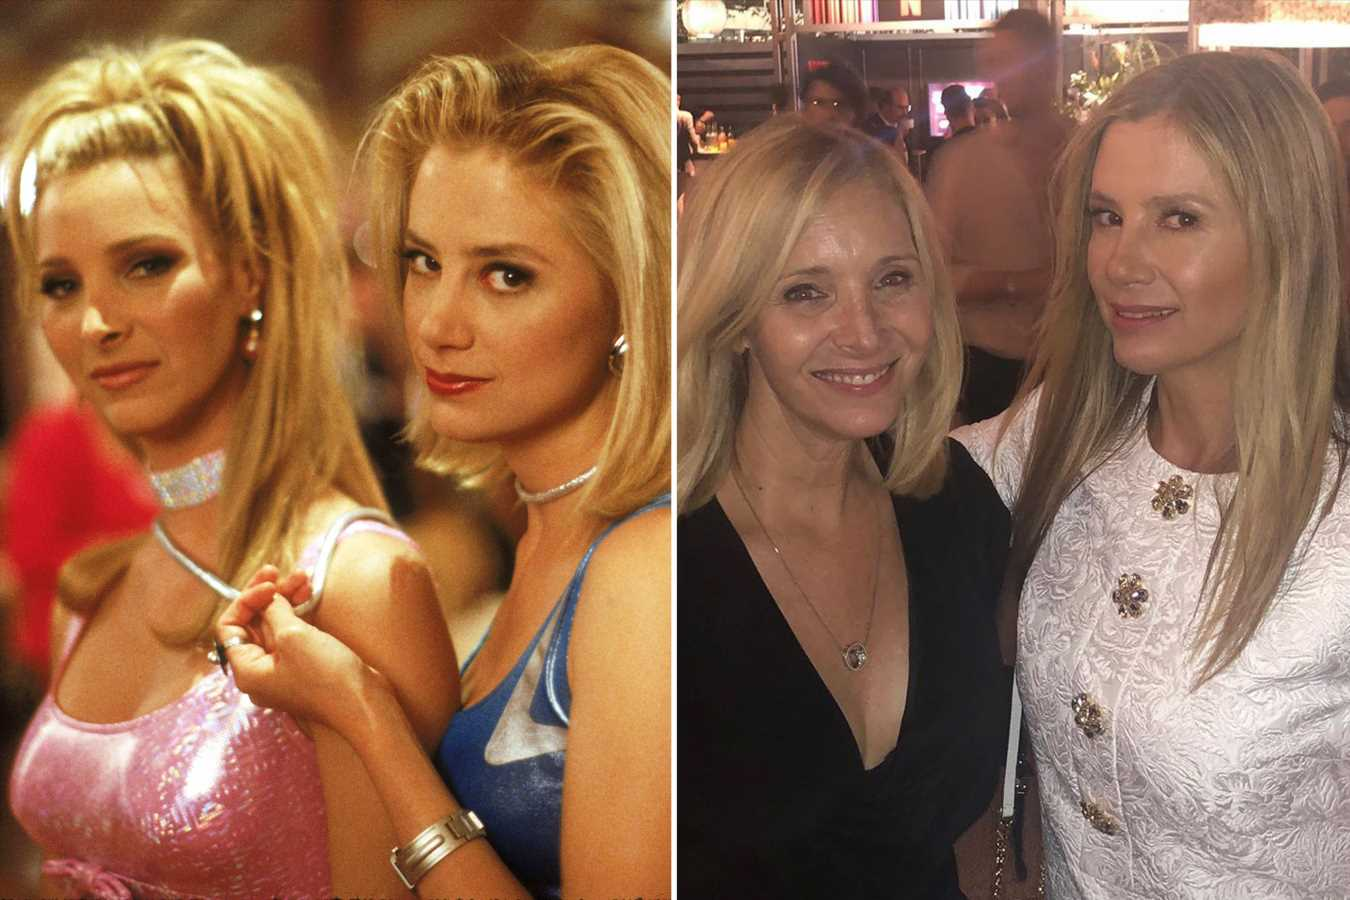 Romy and Michele Together Again! Lisa Kudrow and Mira Sorvino Reunite 22 Years After Hit Movie